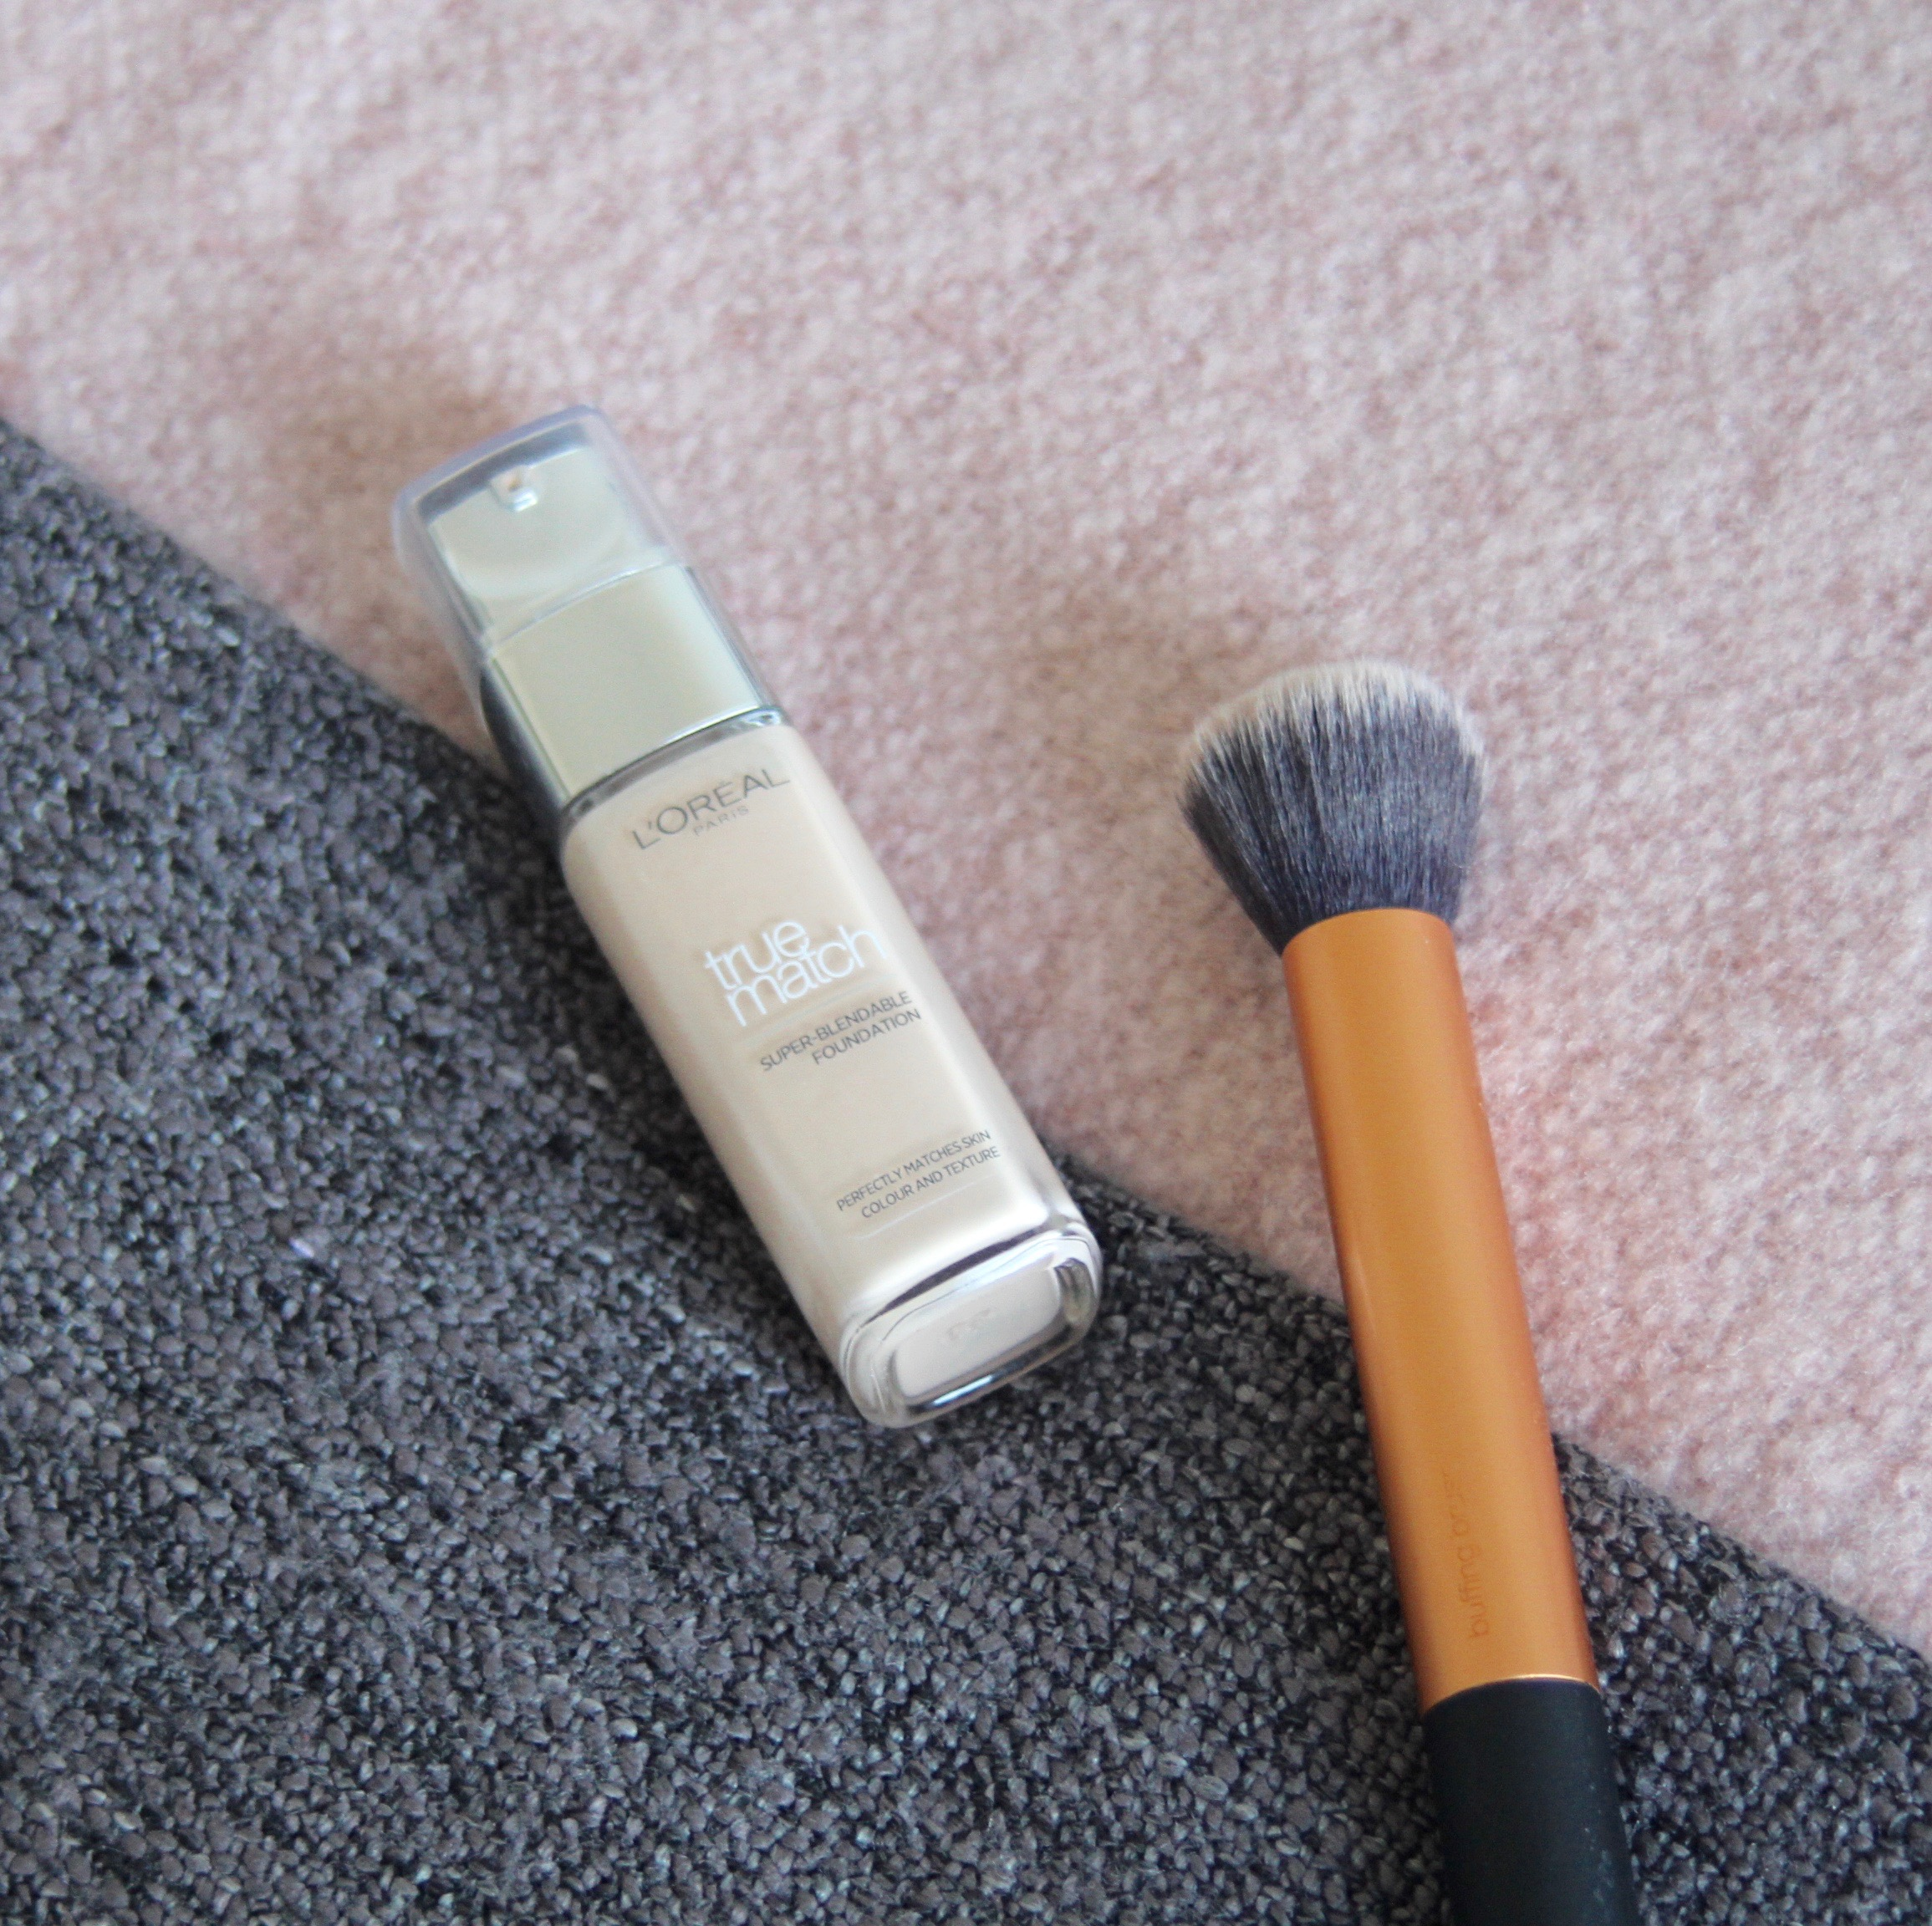 The Style Stories L'Oreal True Match foundation review